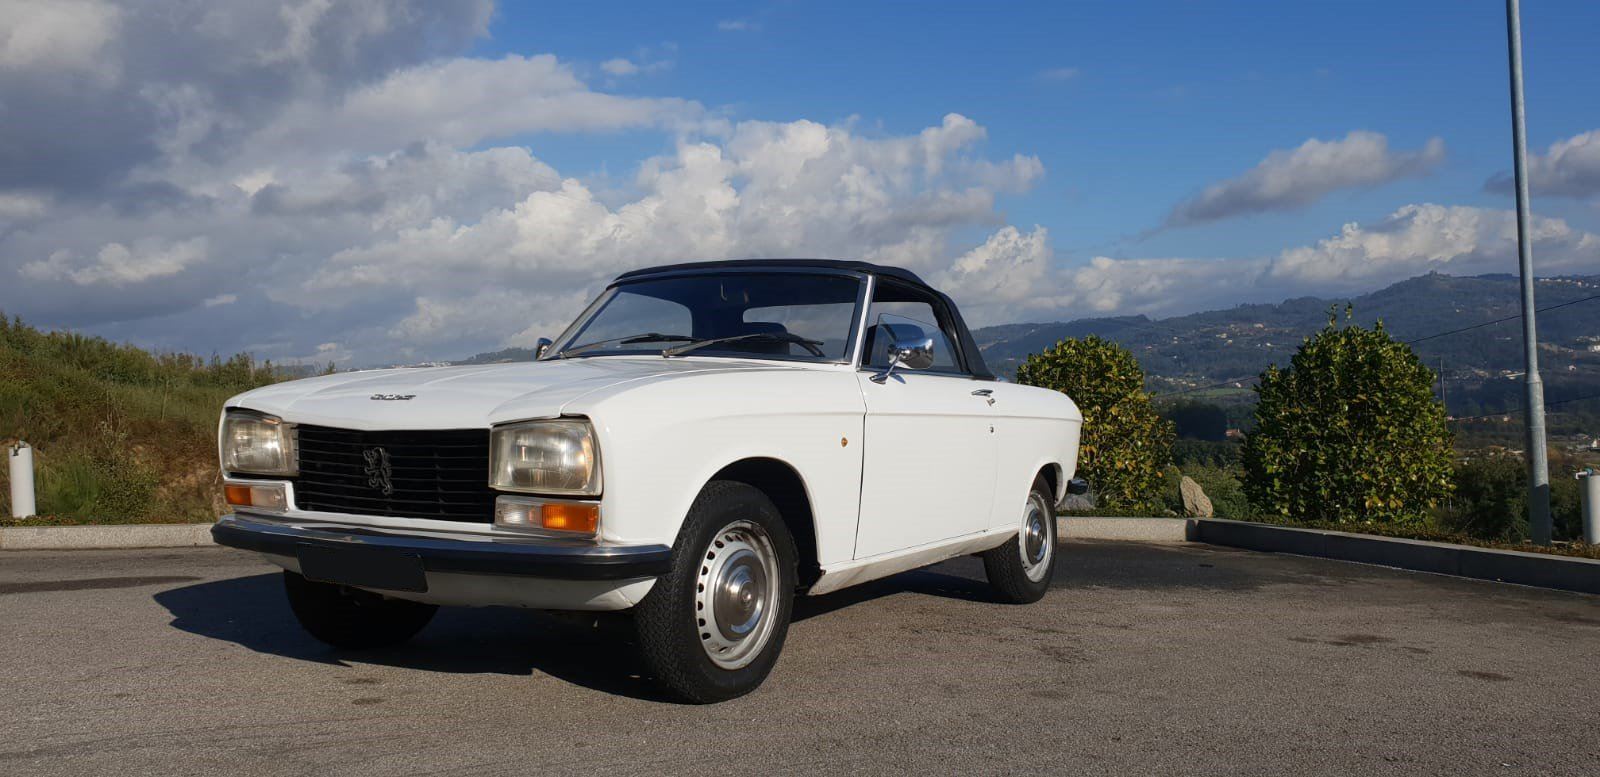 Peugeot 304 Cabrio - 1973 For Sale (picture 1 of 6)